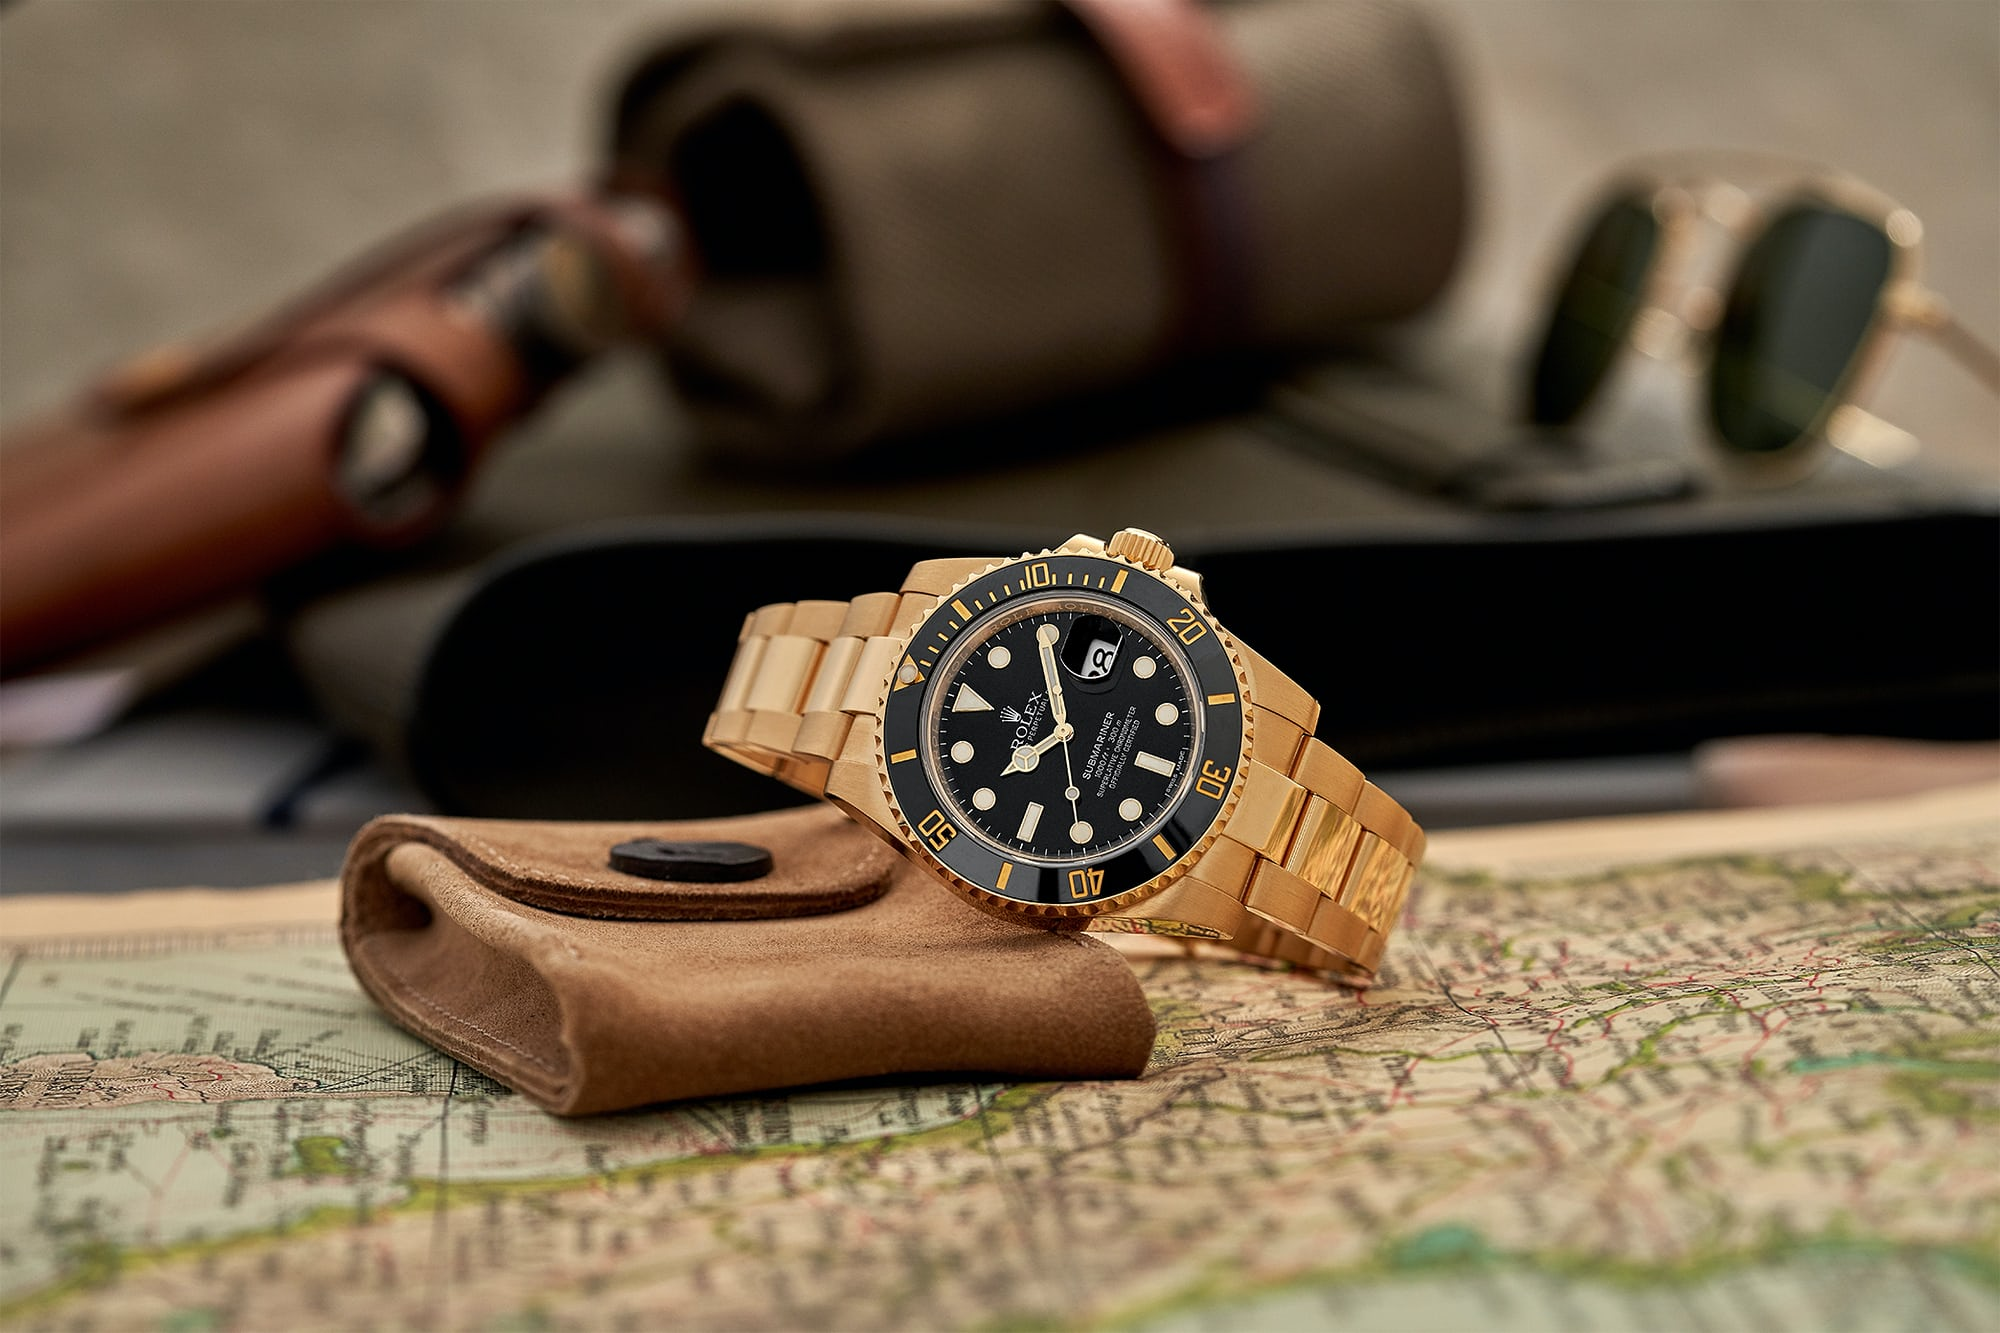 In The Shop - Pre-Owned Picks: A Habring² Chrono-Felix 'Panda,' A Tudor Black Bay Chrono Dark Limited Edition, And A Rolex Submariner Date In 18k Yellow Gold